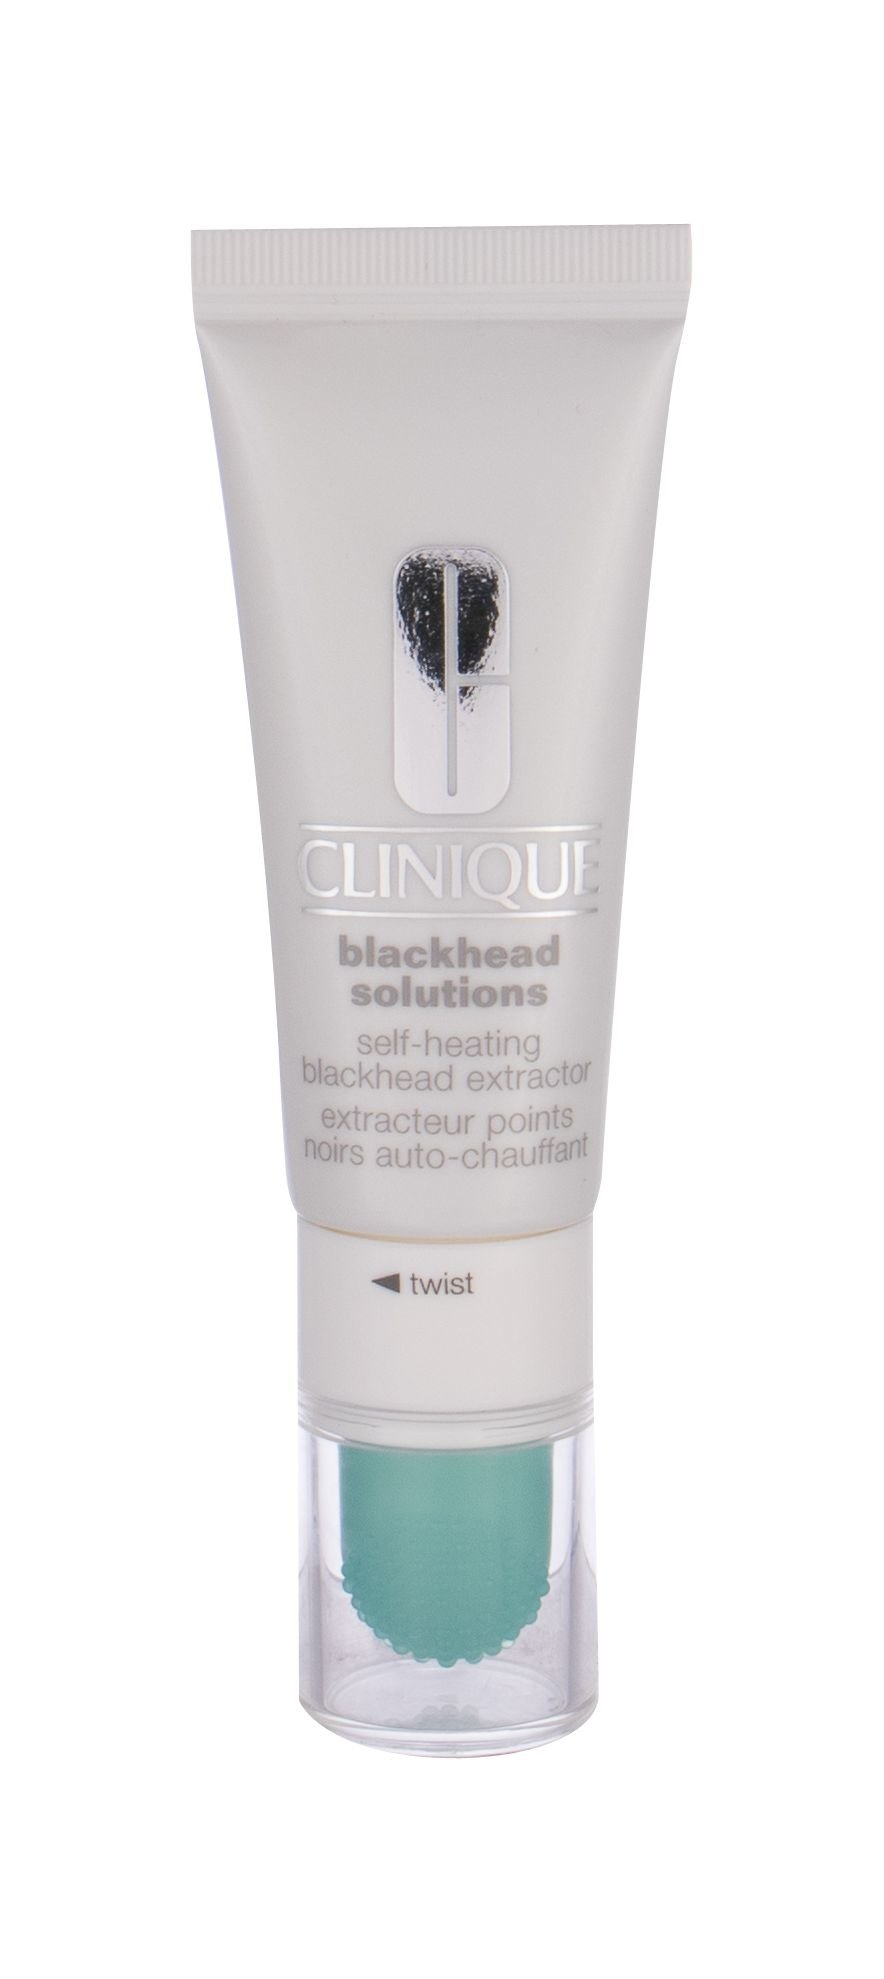 Clinique Blackhead Solutions Cleansing Gel 20ml  Self-Heating Blackhead Extractor